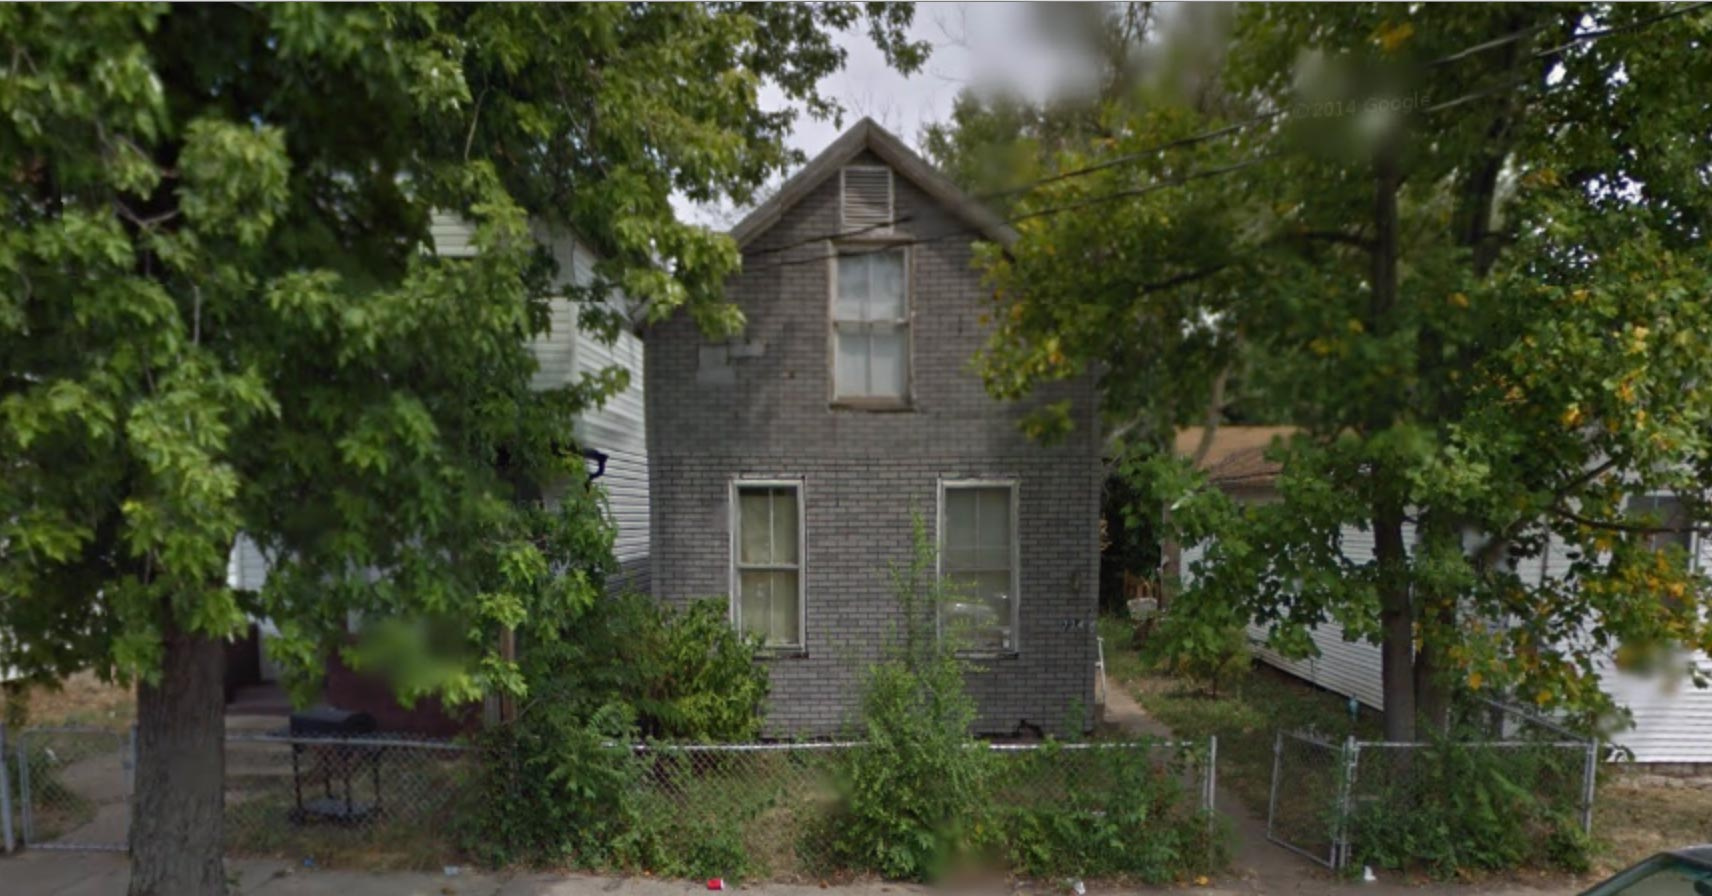 Divine Ohio House At South Street Googlestreet Unfortunate Inheritance Property Fates Are Often Avoidable Death House Map 5e Death House Map Gmod curbed Death House Map